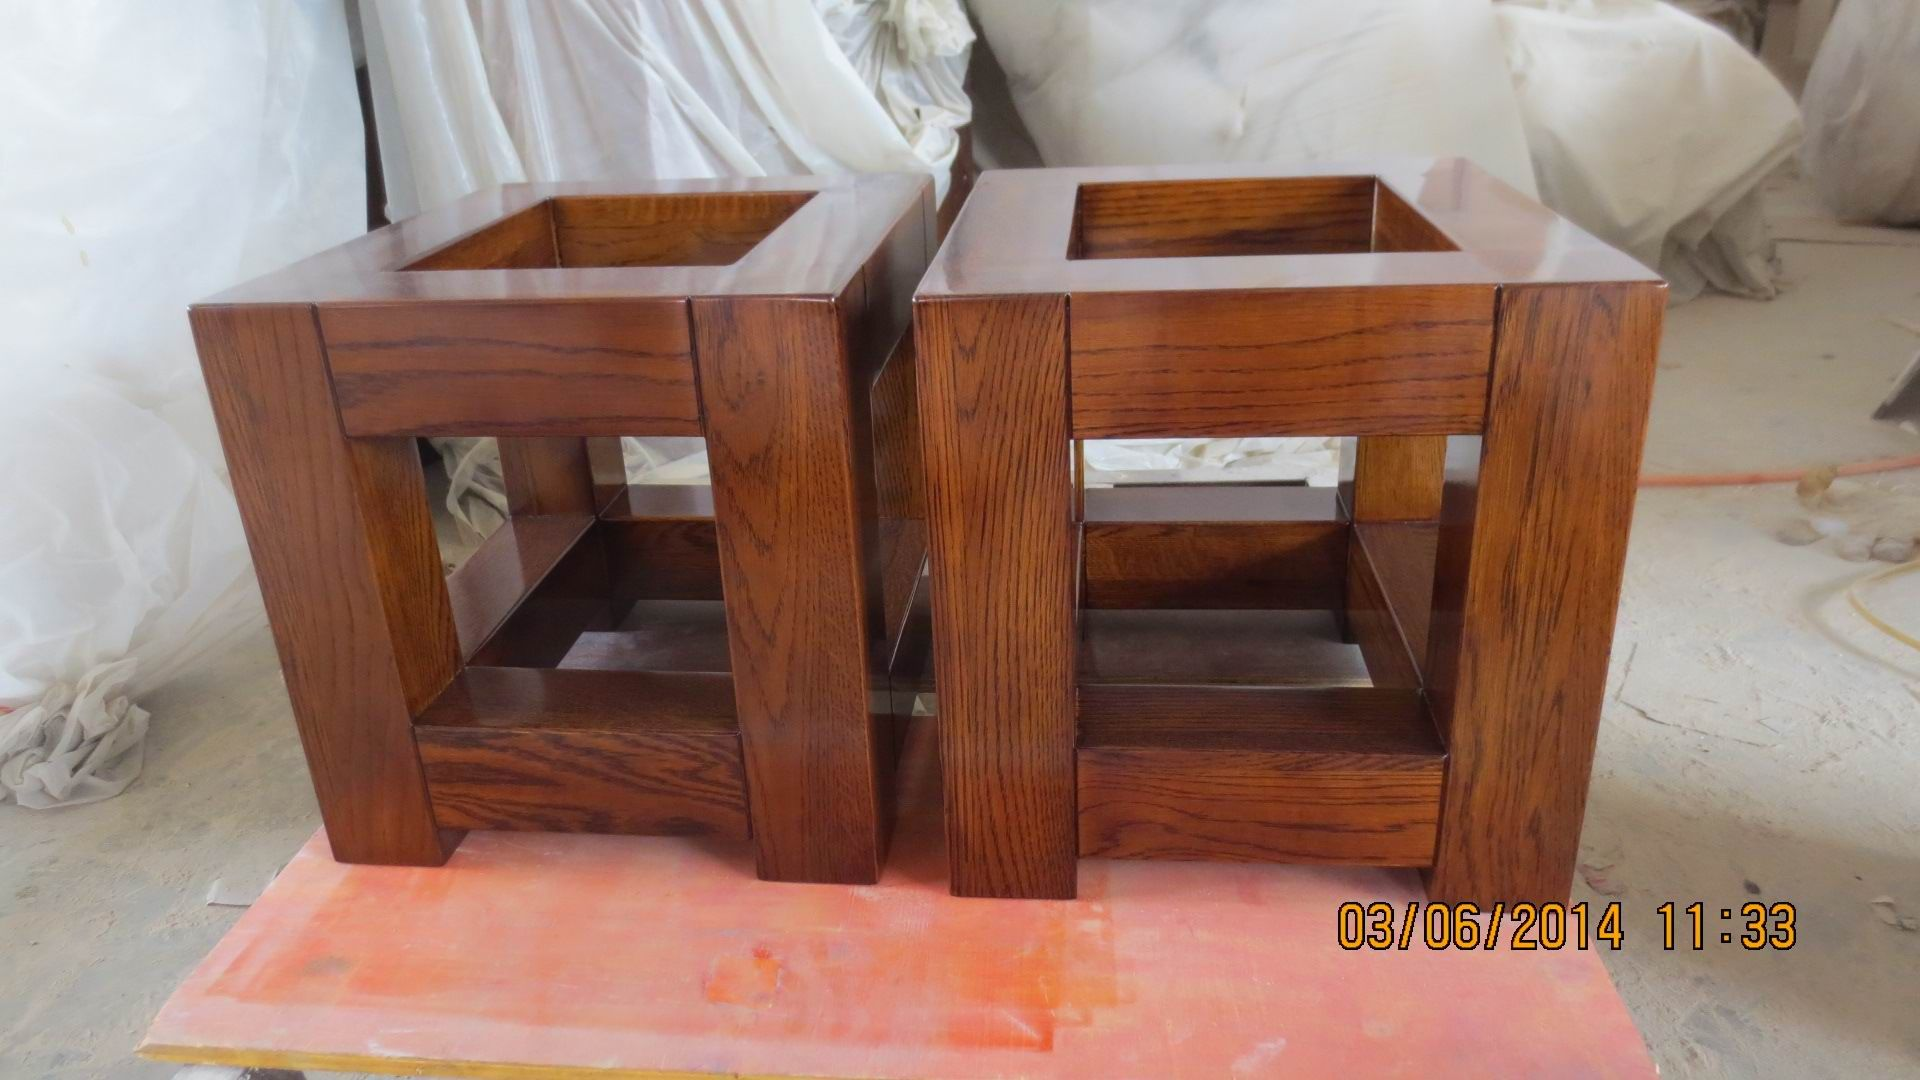 Pure Solid Wood Speaker Stands Amplifier Racks Made To Order Solid Wood Stand Taobao Depot Taobao Agent Wood Speakers Speaker Stands Wood Stand